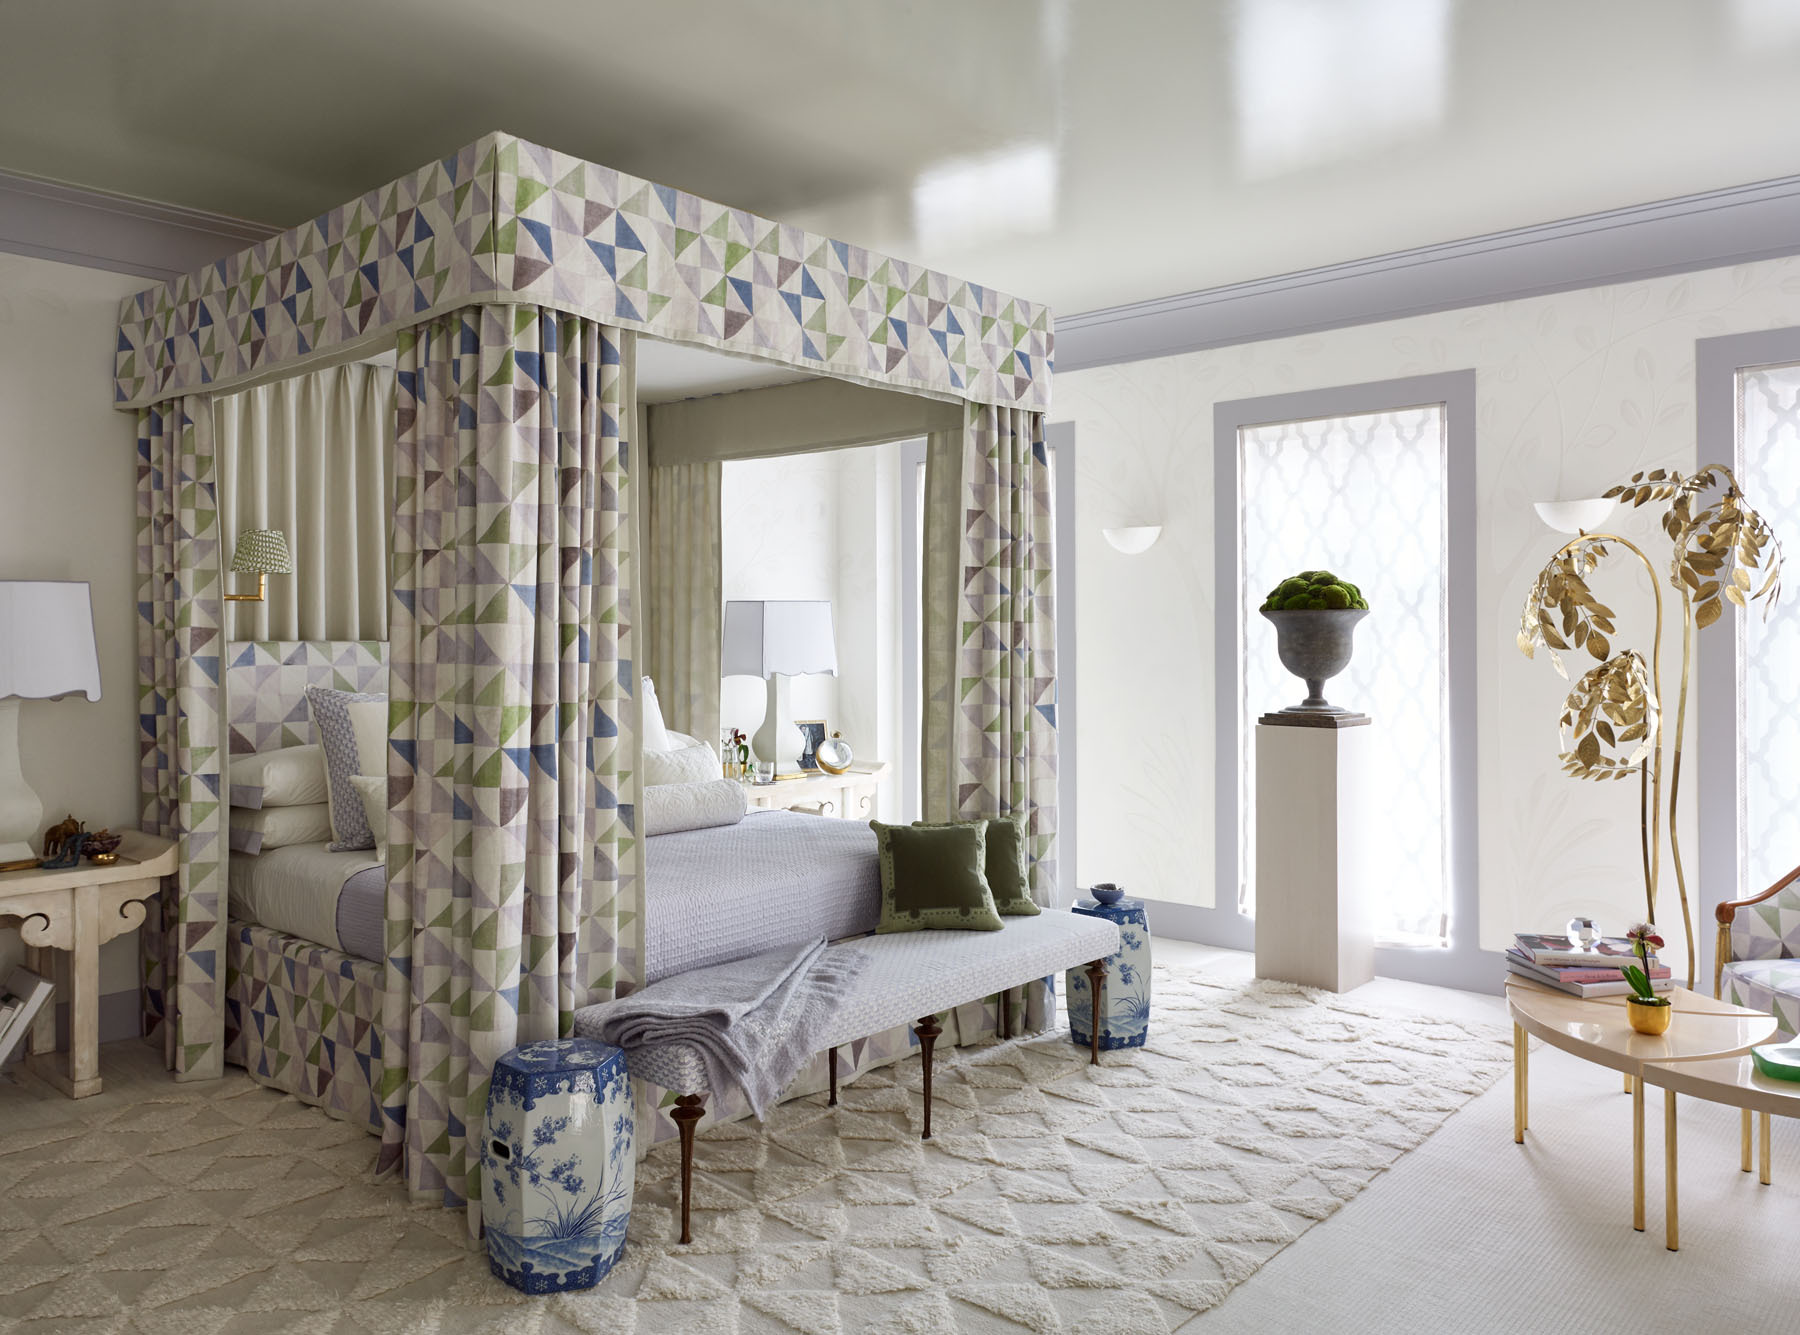 Show House Bedroom Design Diary Timothy Whealon Breaks Down A Hamptons Dream Bedroom